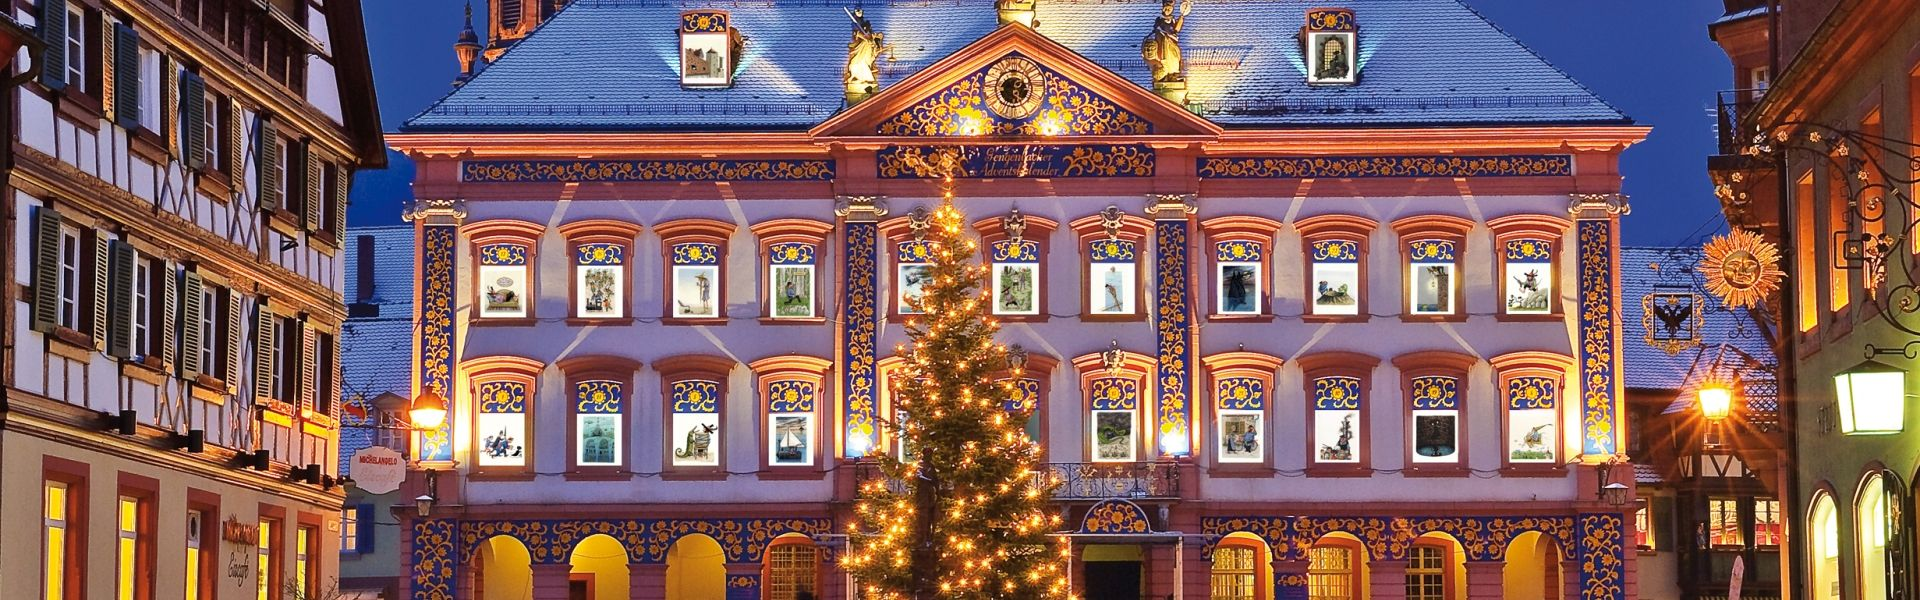 Gengenbach Town Hall Advent Calender - image courtesy of GNTBKeute,Jochen